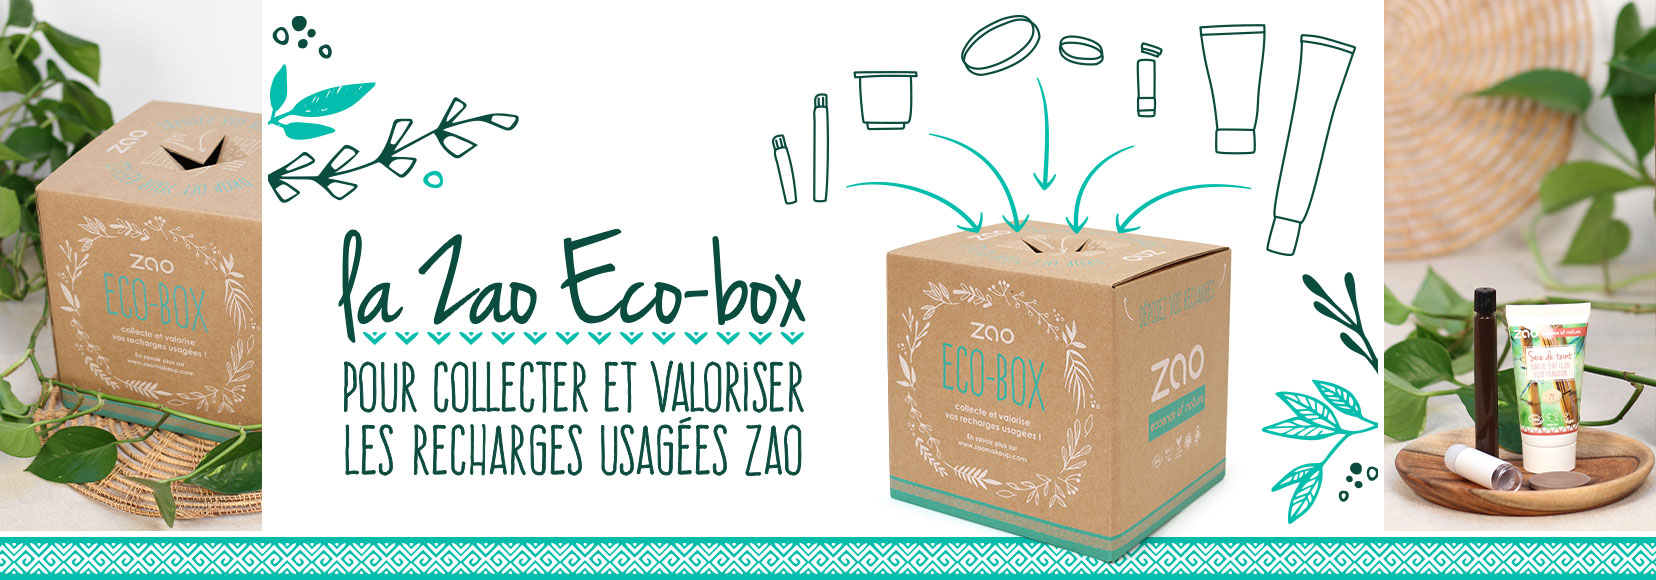 La Zao Eco-box